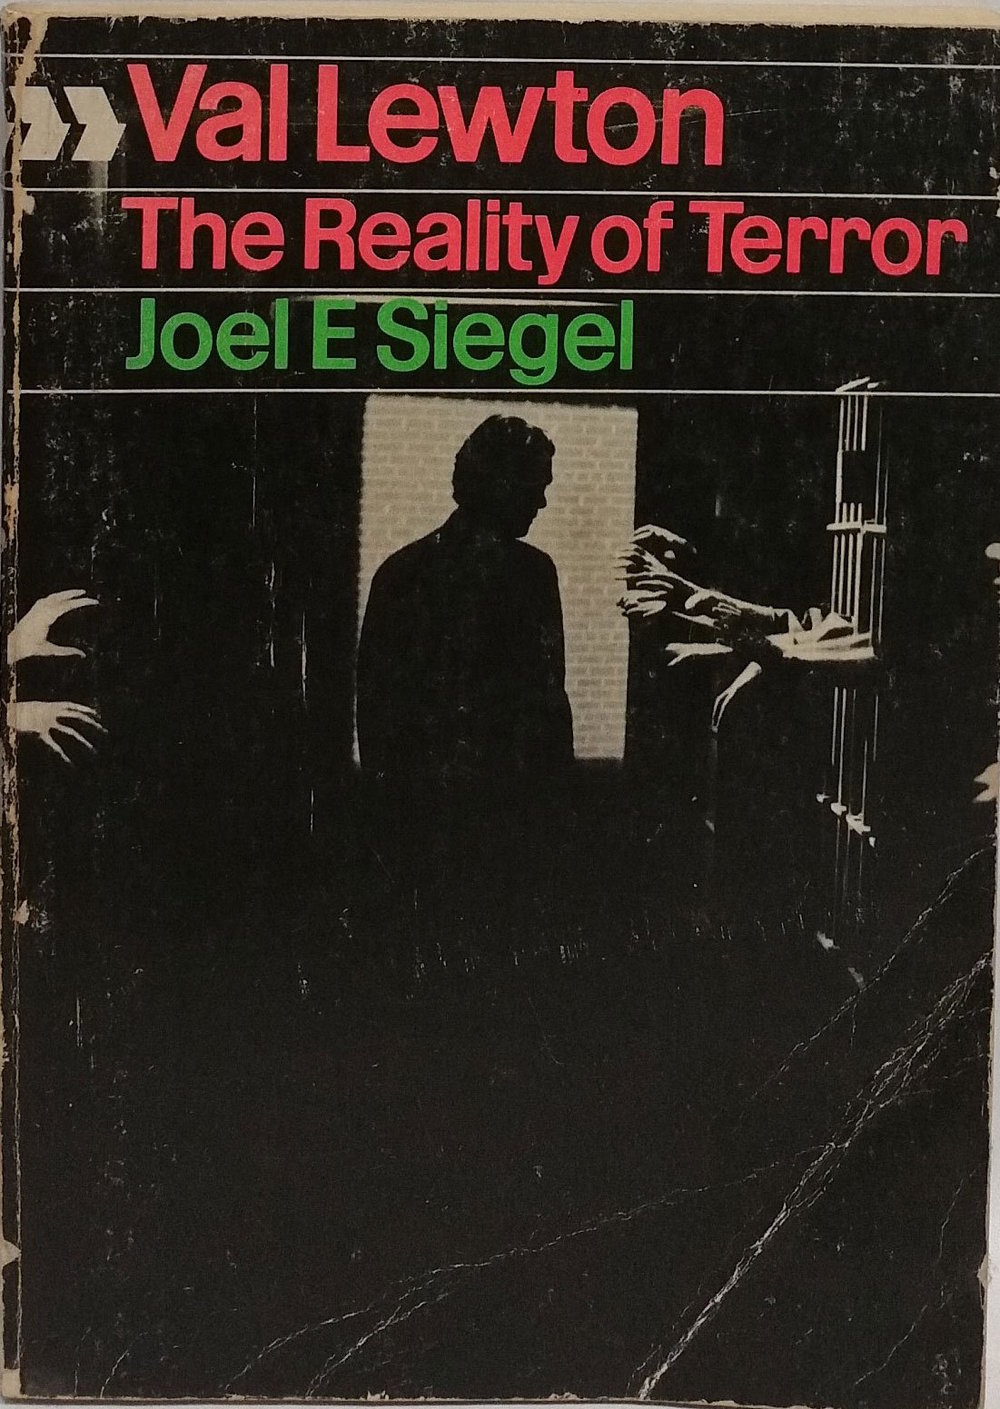 Val Lewton: The Reality of Terror by Joel E. Siegel